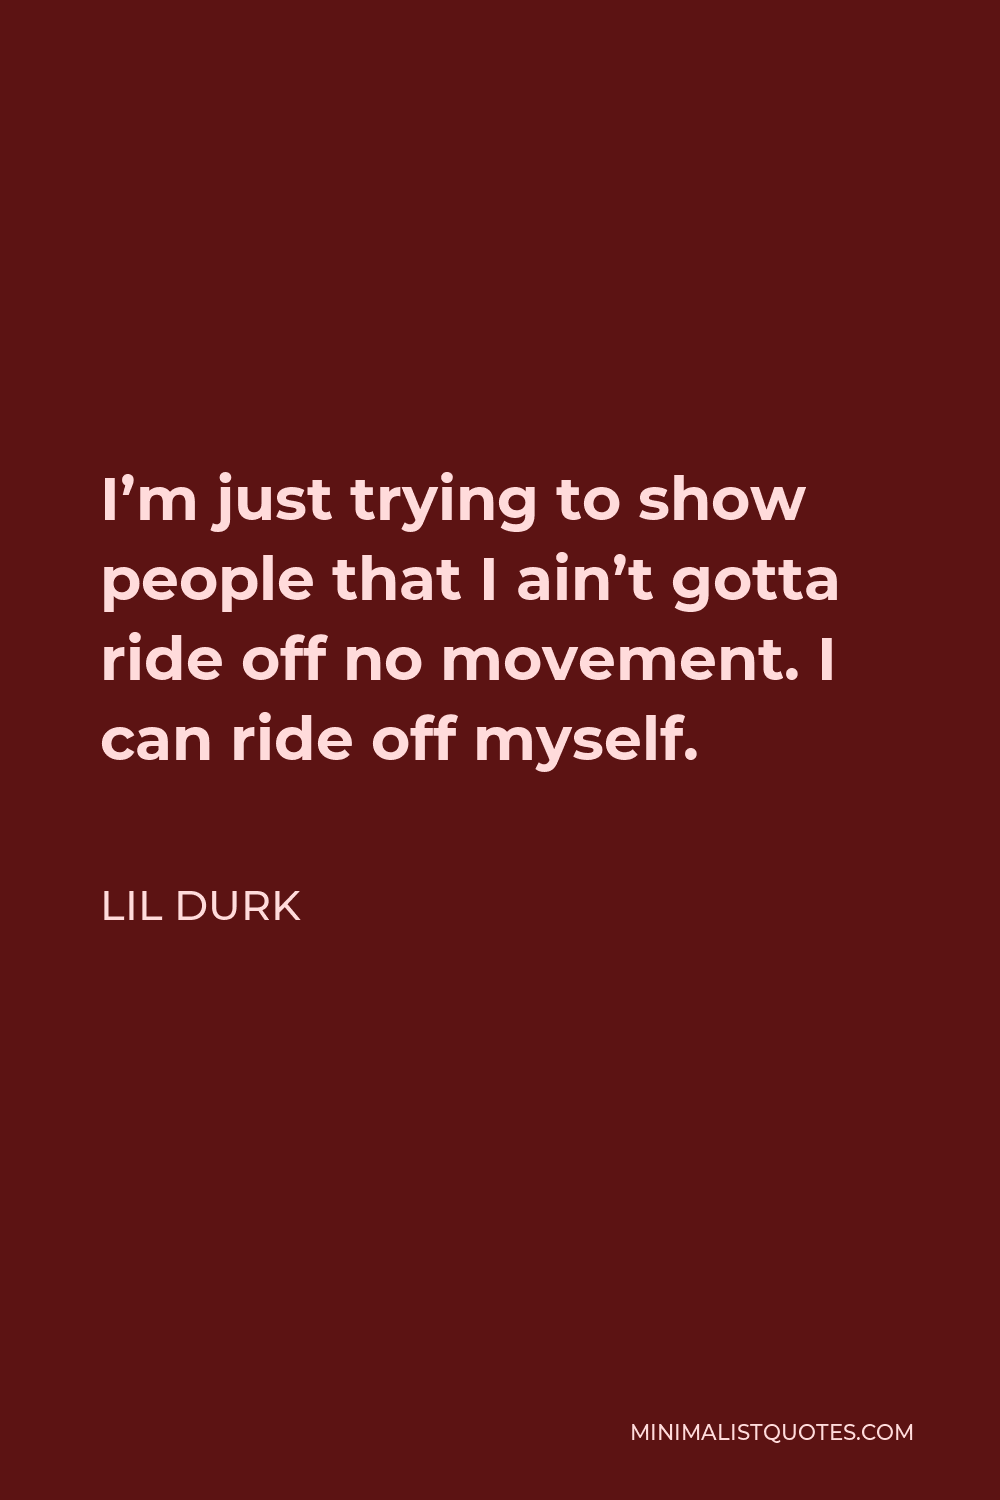 Lil Durk Quote - I'm just trying to show people that I ain't gotta ride off no movement. I can ride off myself.